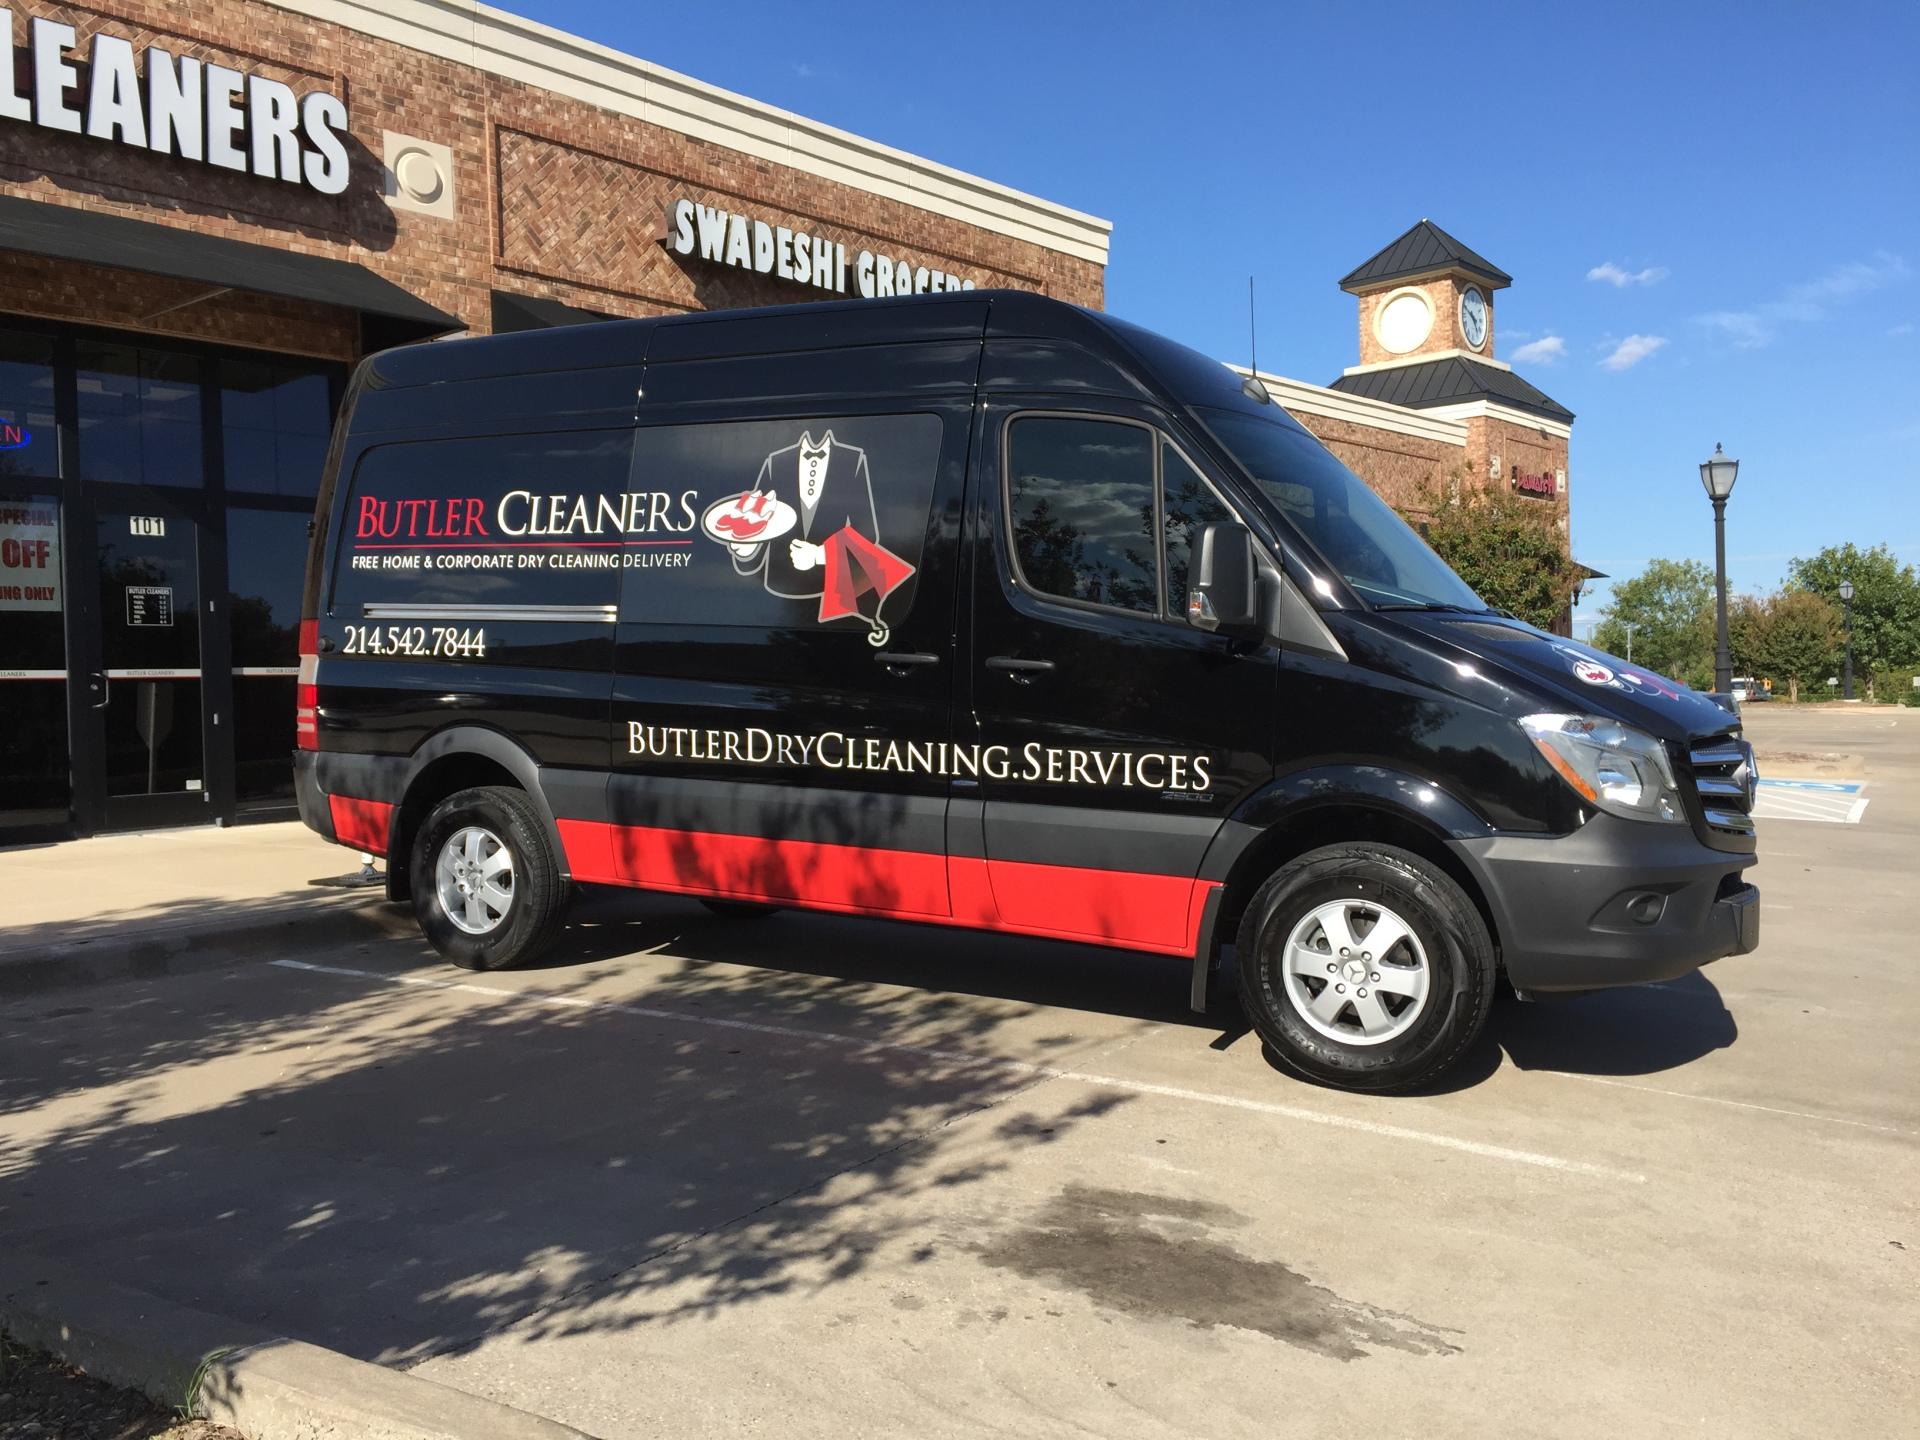 Butler Cleaners Mercedez Sprinter Van Wrap